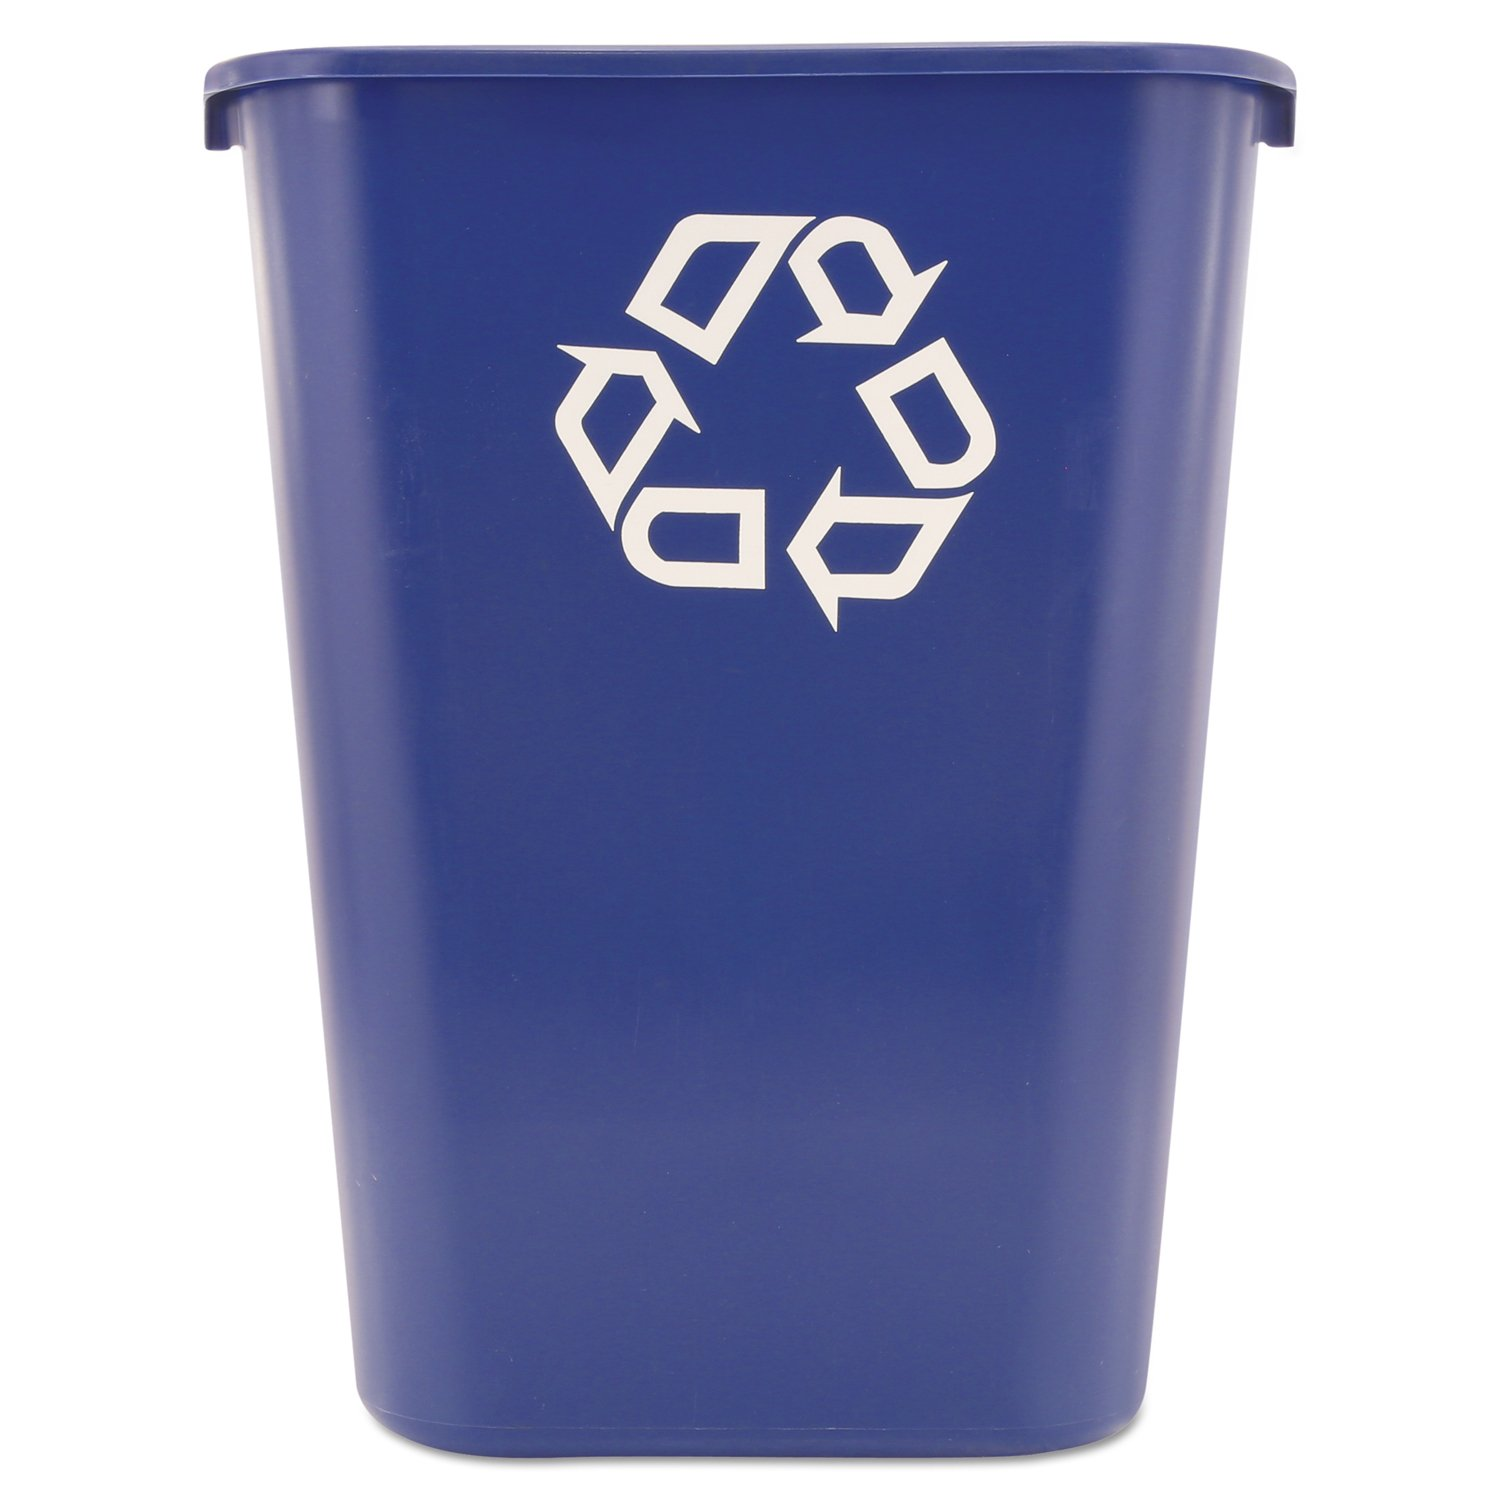 trash cans waste receptacles liners industrial